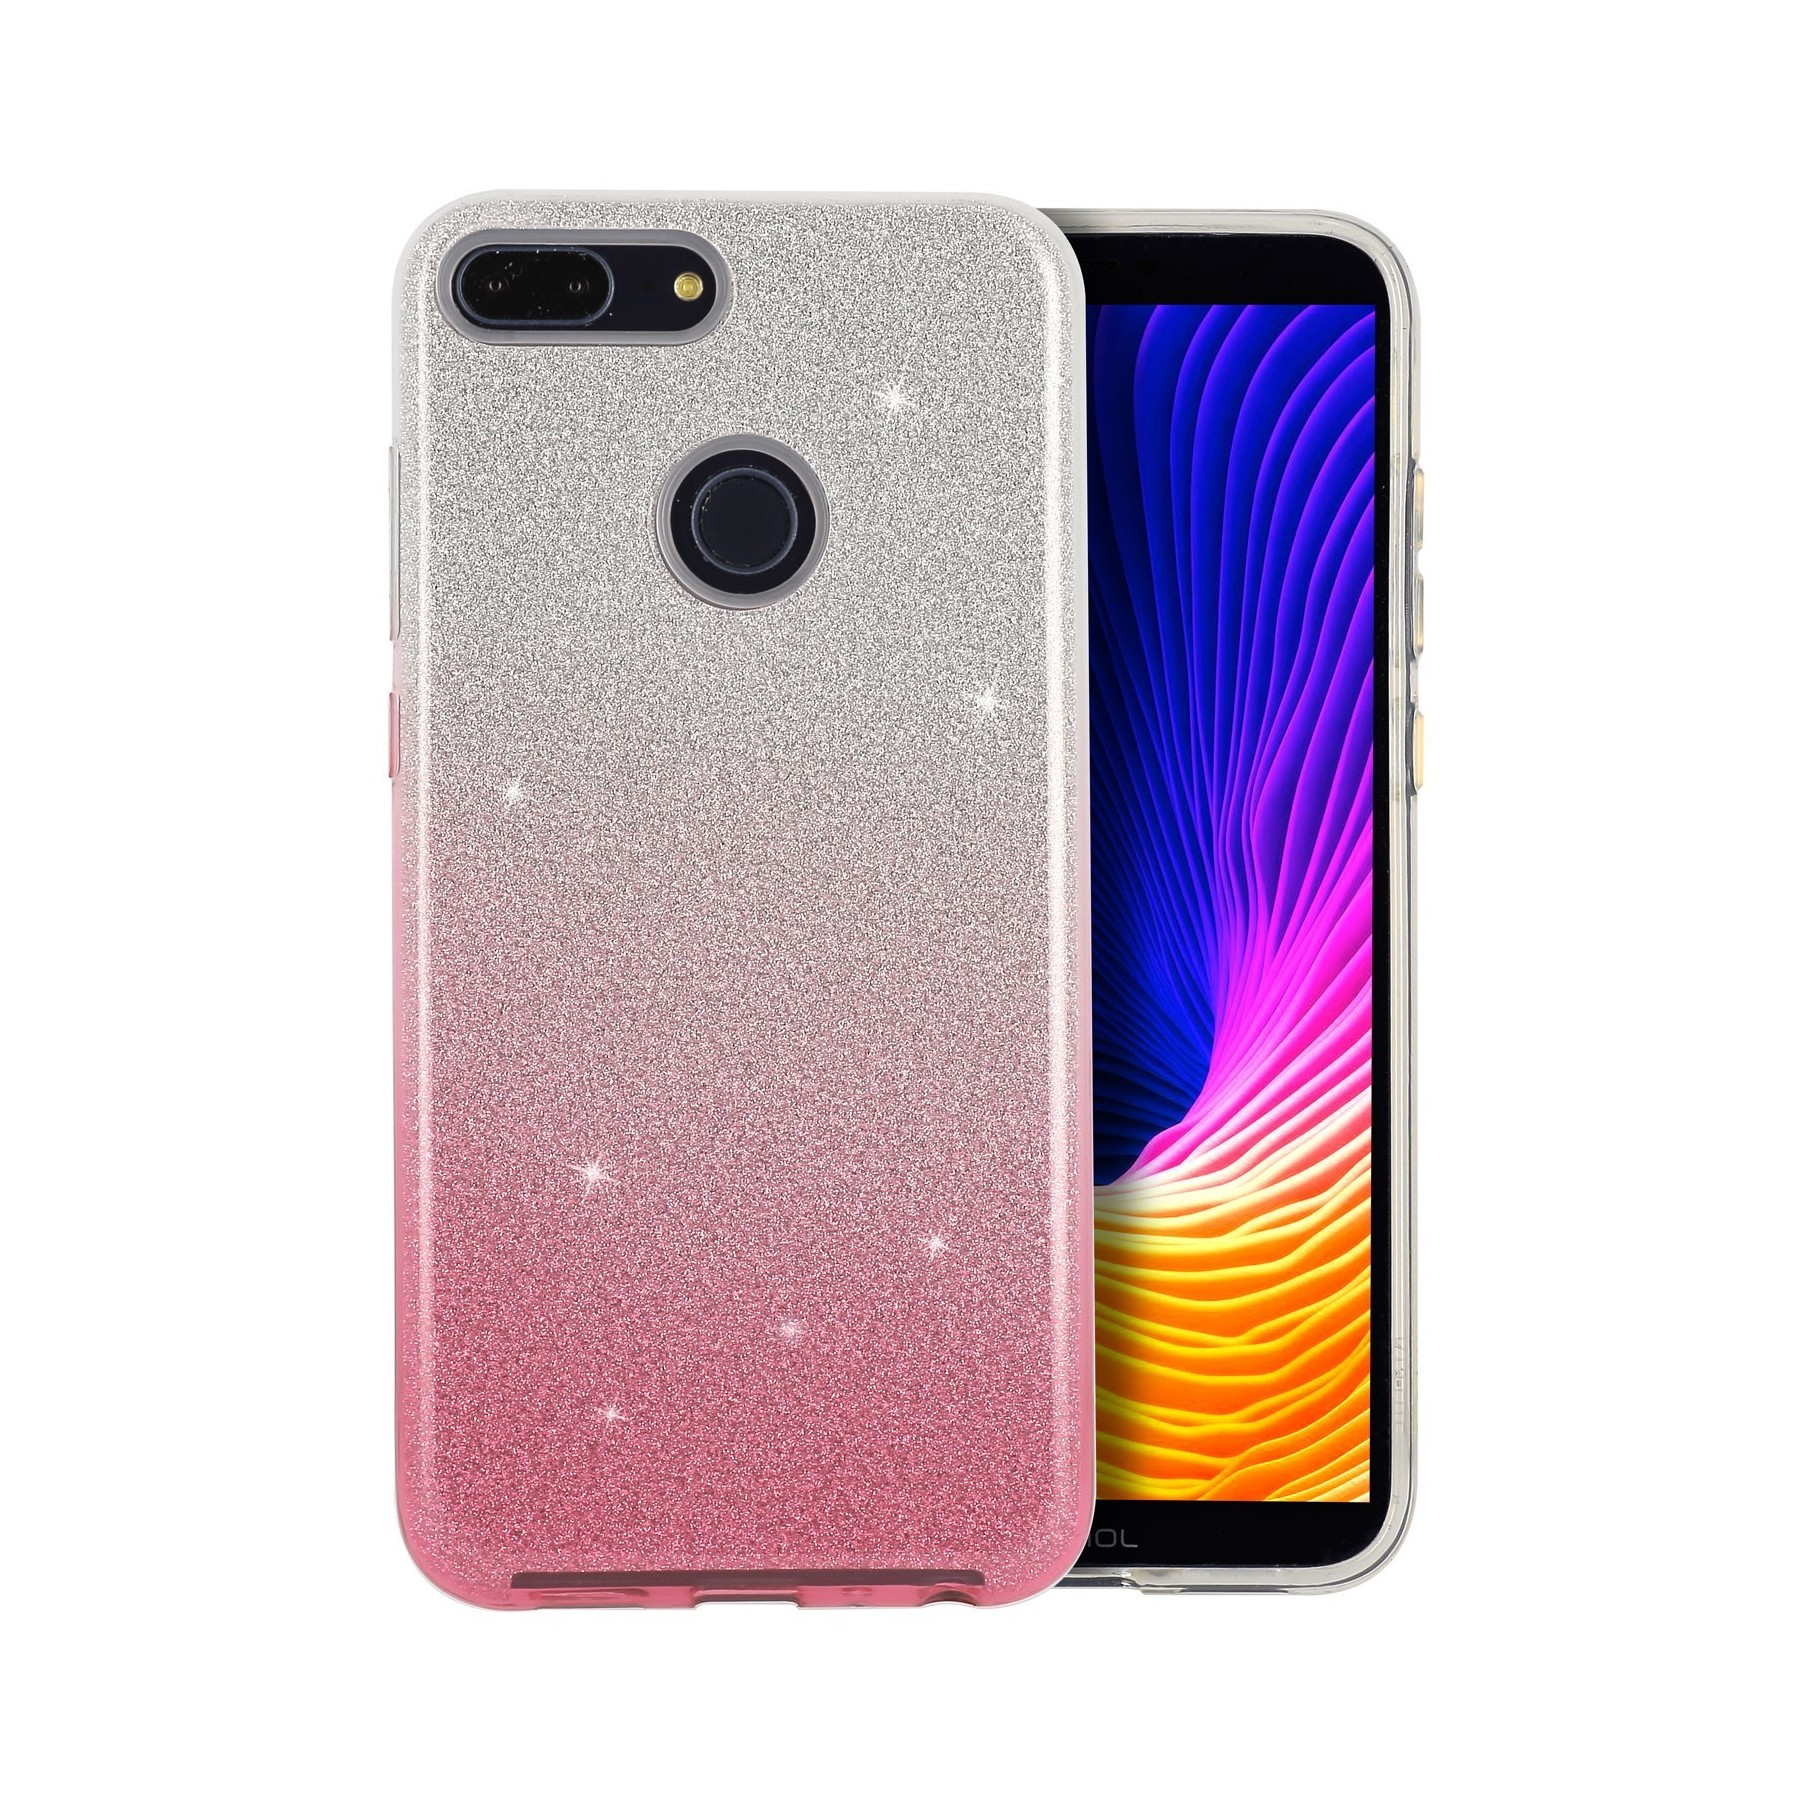 Coque Strass degrade rose pour Huawei Y7 2018